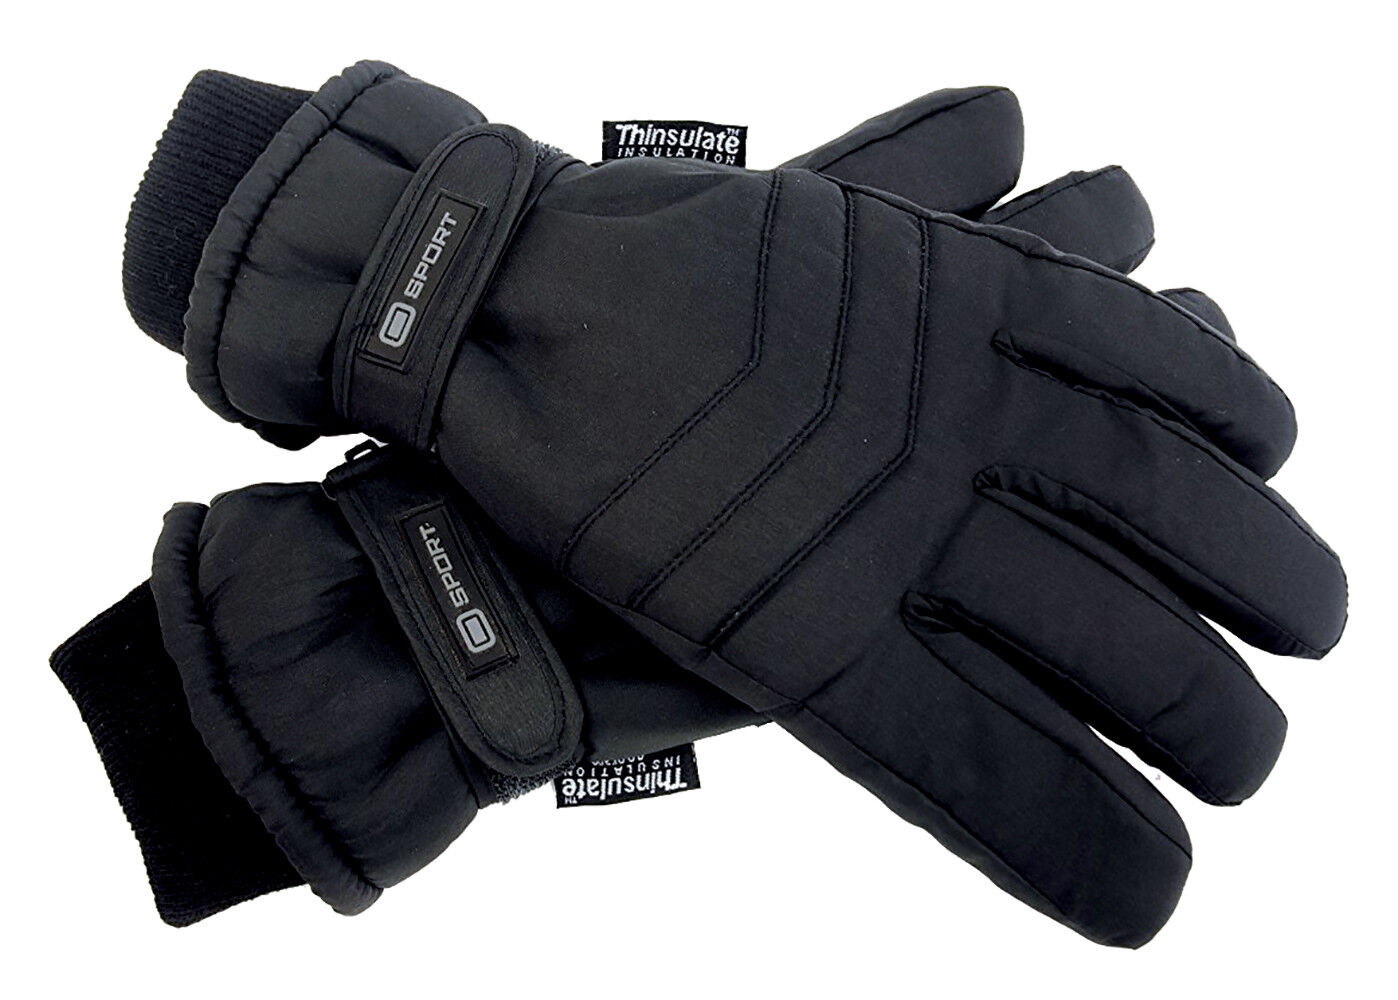 Mens Womens Winter Super Soft Thermal Lined Thinsilate Leather Warm Gloves